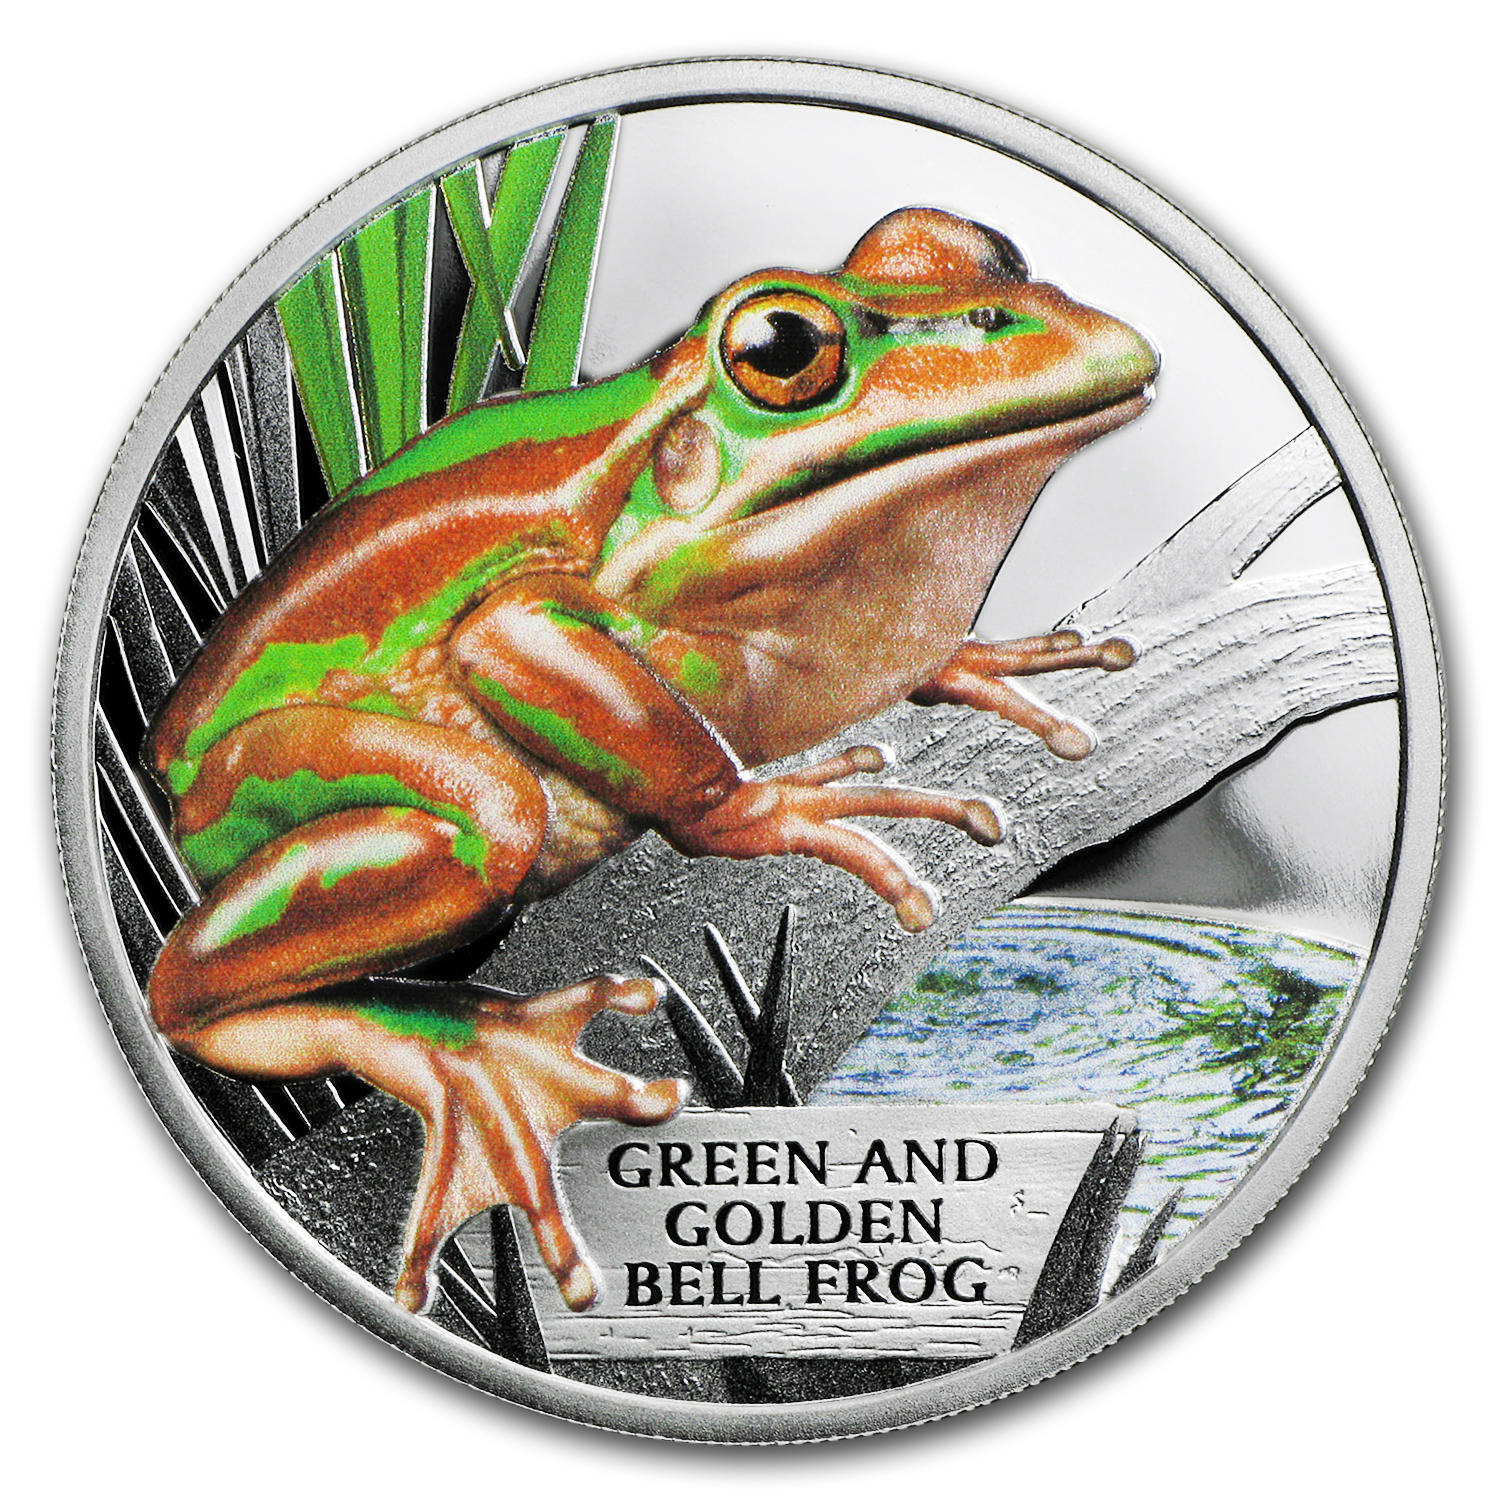 2017 Australia 1 oz Proof Silver Green and Golden Bell Frog